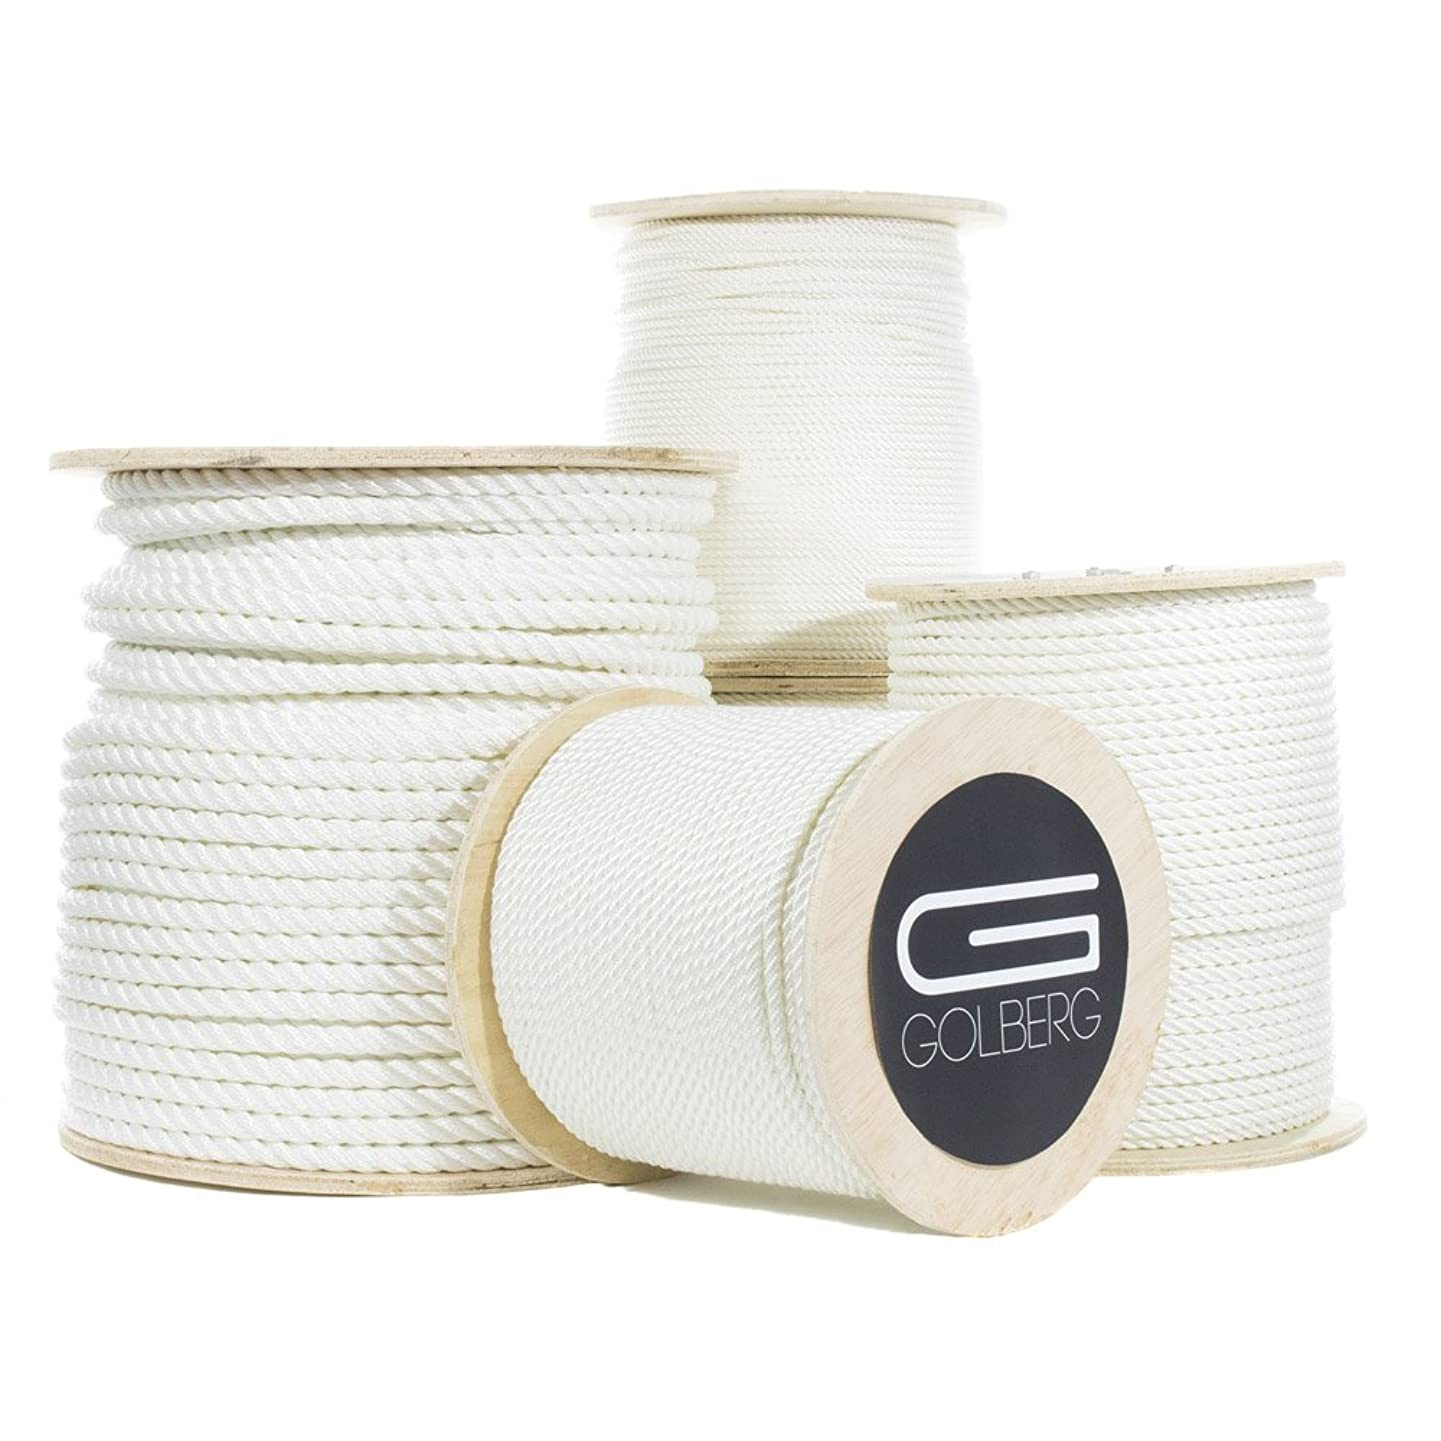 GOLBERG Twisted Nylon Rope (1/4 Inch - 2 Inch) White Multipurpose Utility Line - Weather, Chemical and Alkali Resistant - Dock Lines, Towing Lines, Heavy Loads and Crafts (10 Ft - 1200 Ft)